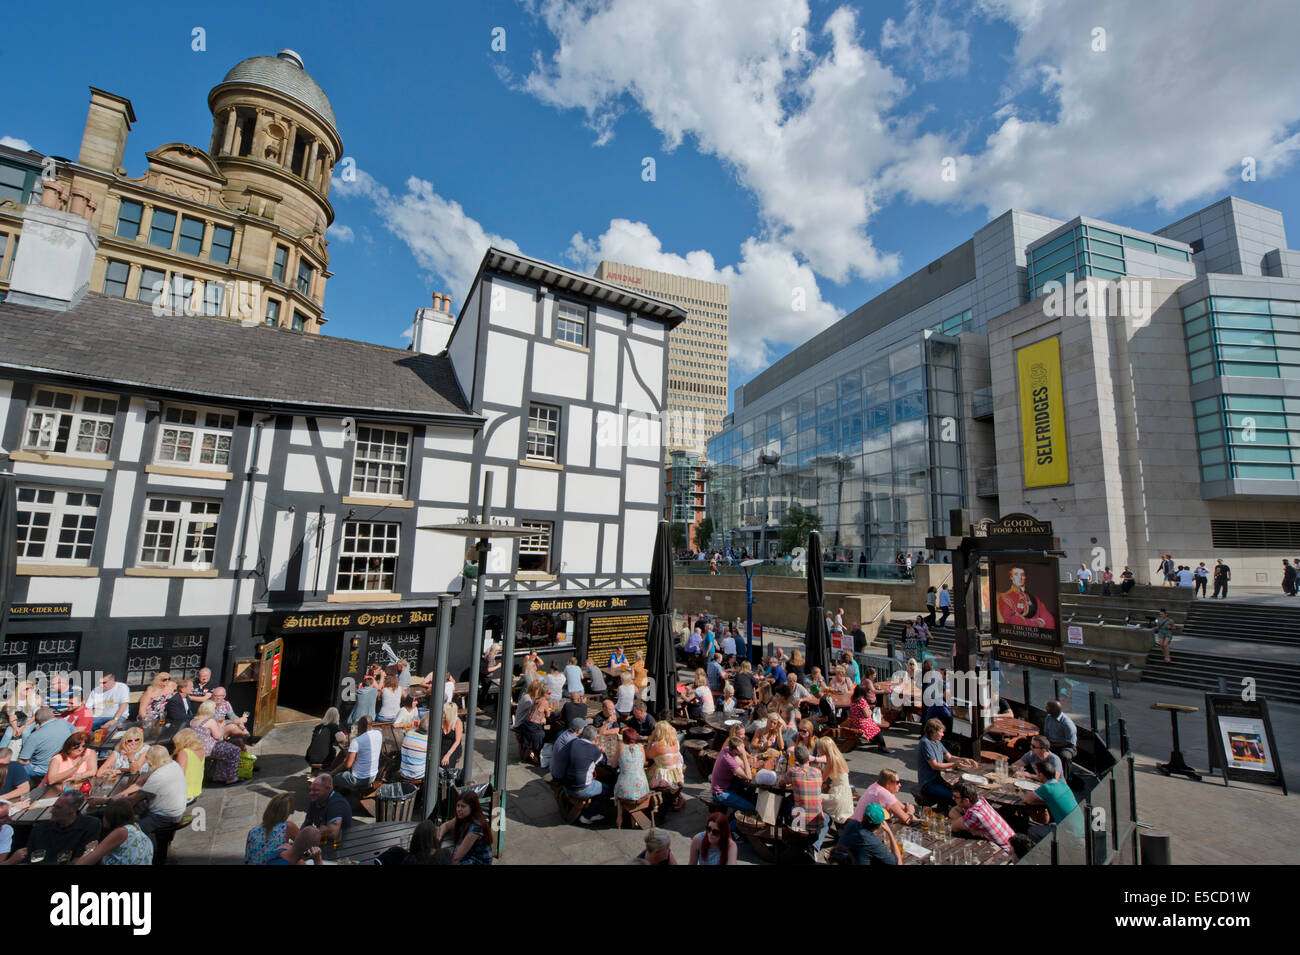 People enjoy themselves in beer garden of Sinclair's Oyster Bar near Corn Exchange Triangle in Manchester. - Stock Image